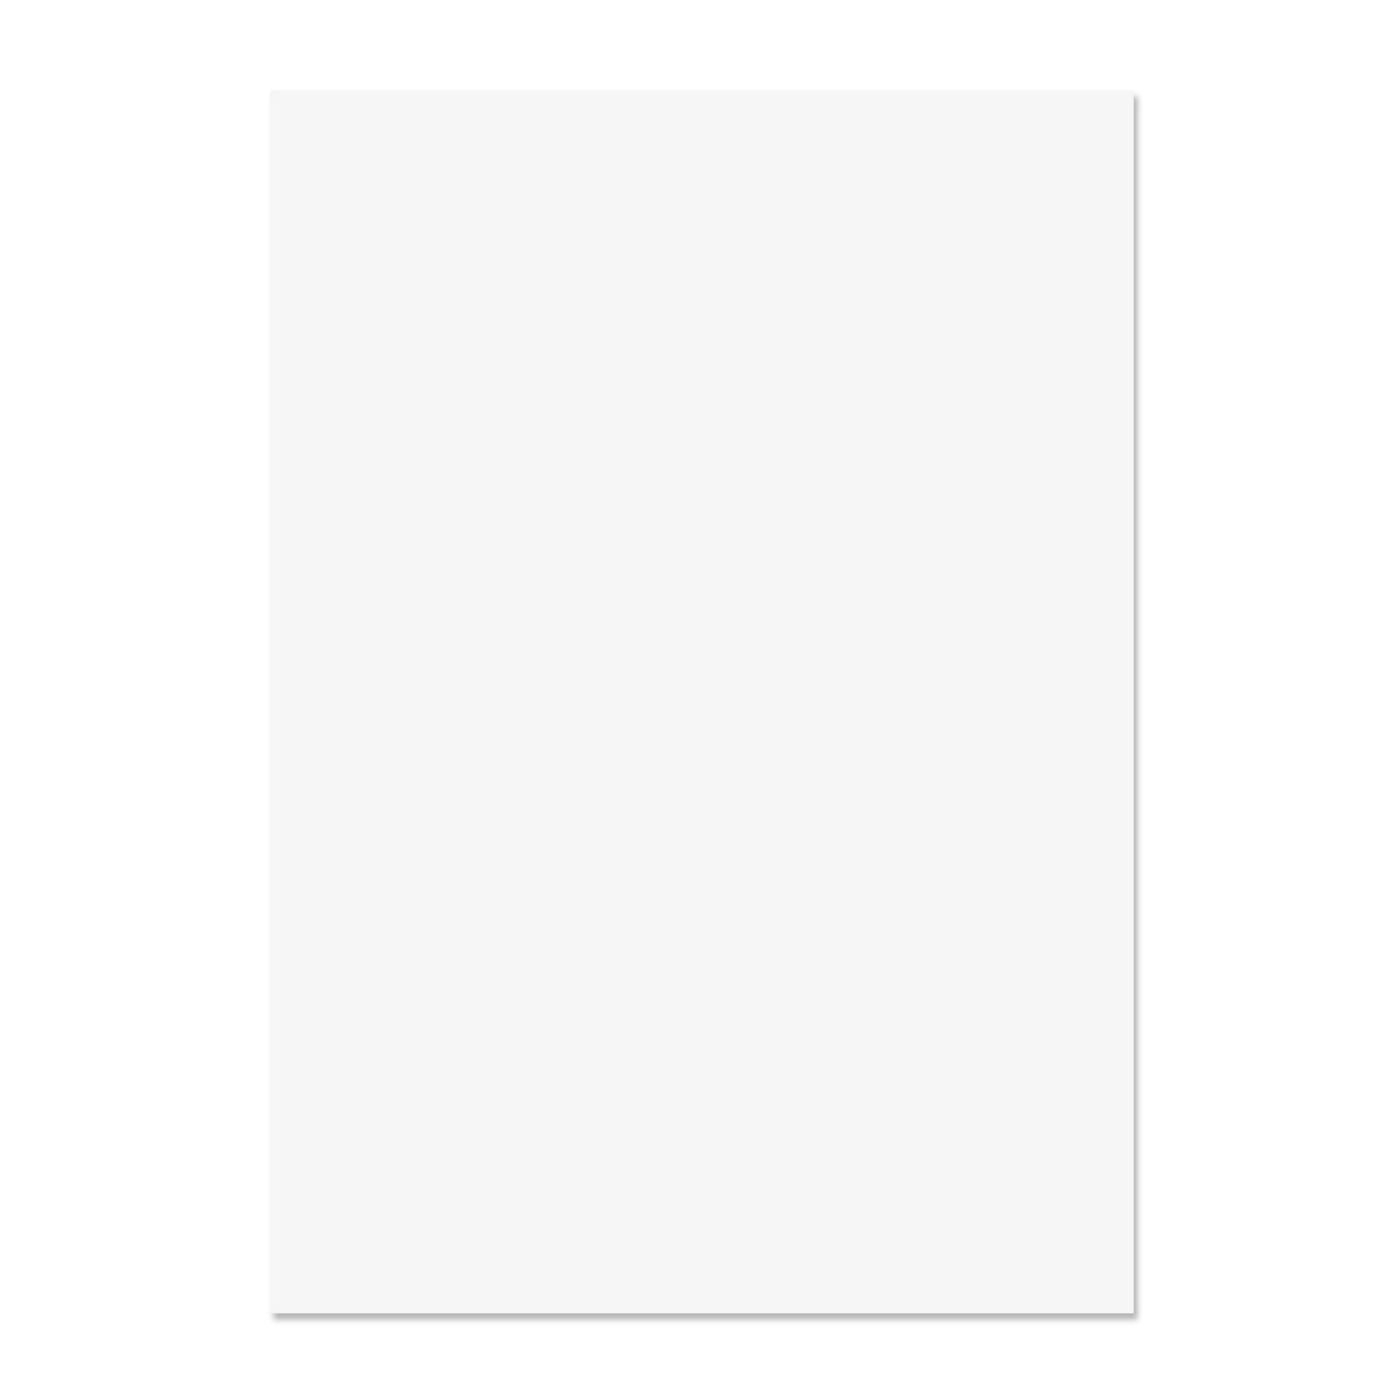 A4 Blake Premium Business Paper A4 120gsm Brilliant White Wove (Pack 50)